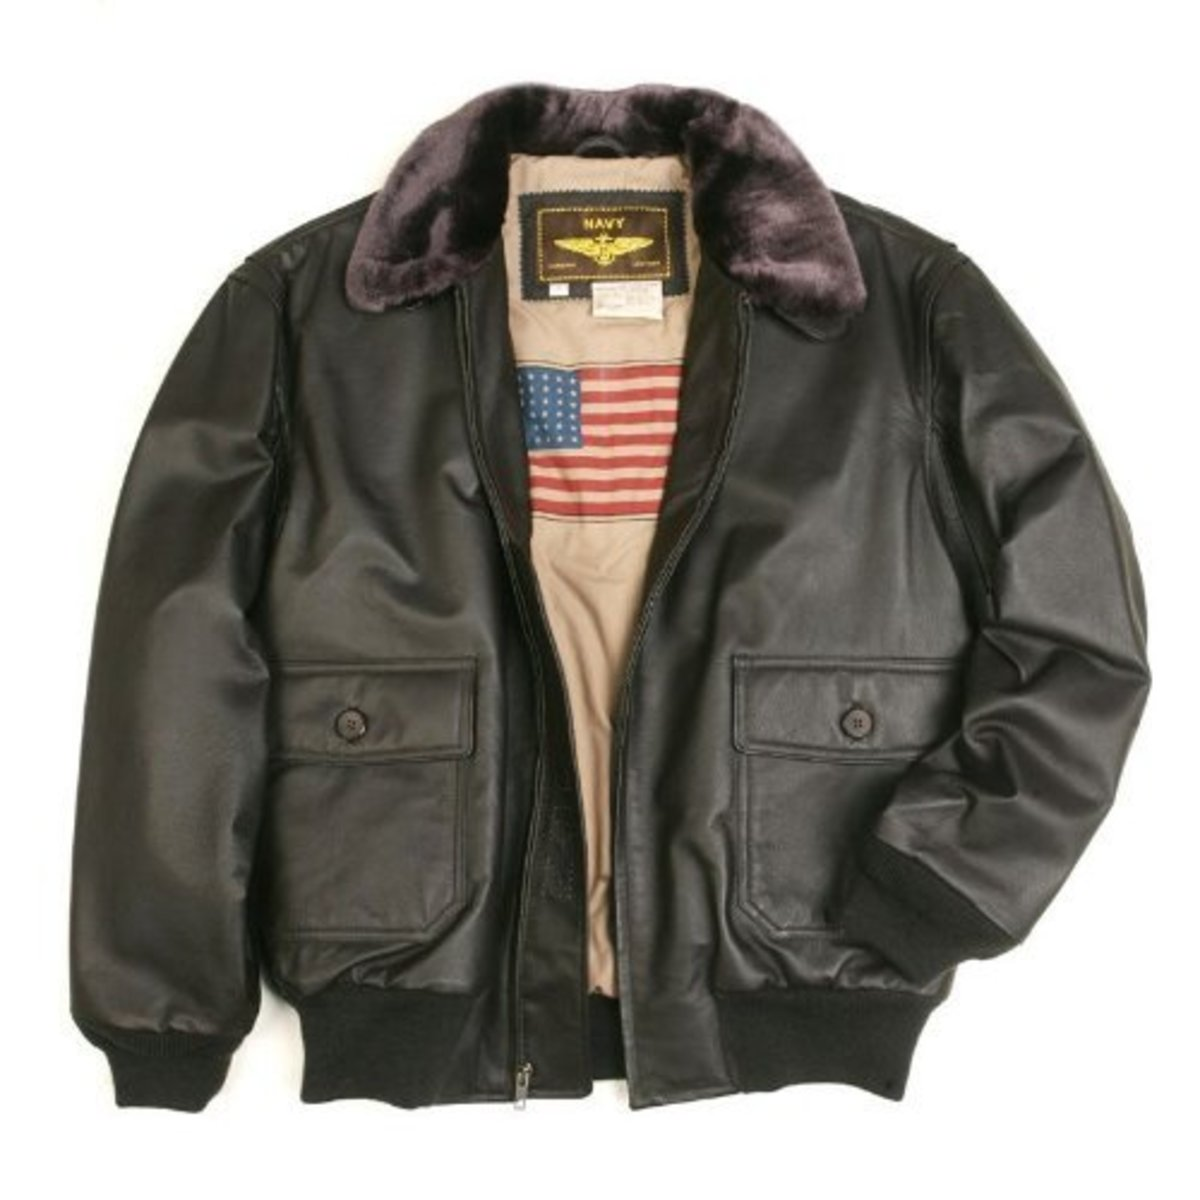 Buy Cheap Bomber Jackets for Men, Women, Juniors, or Kids